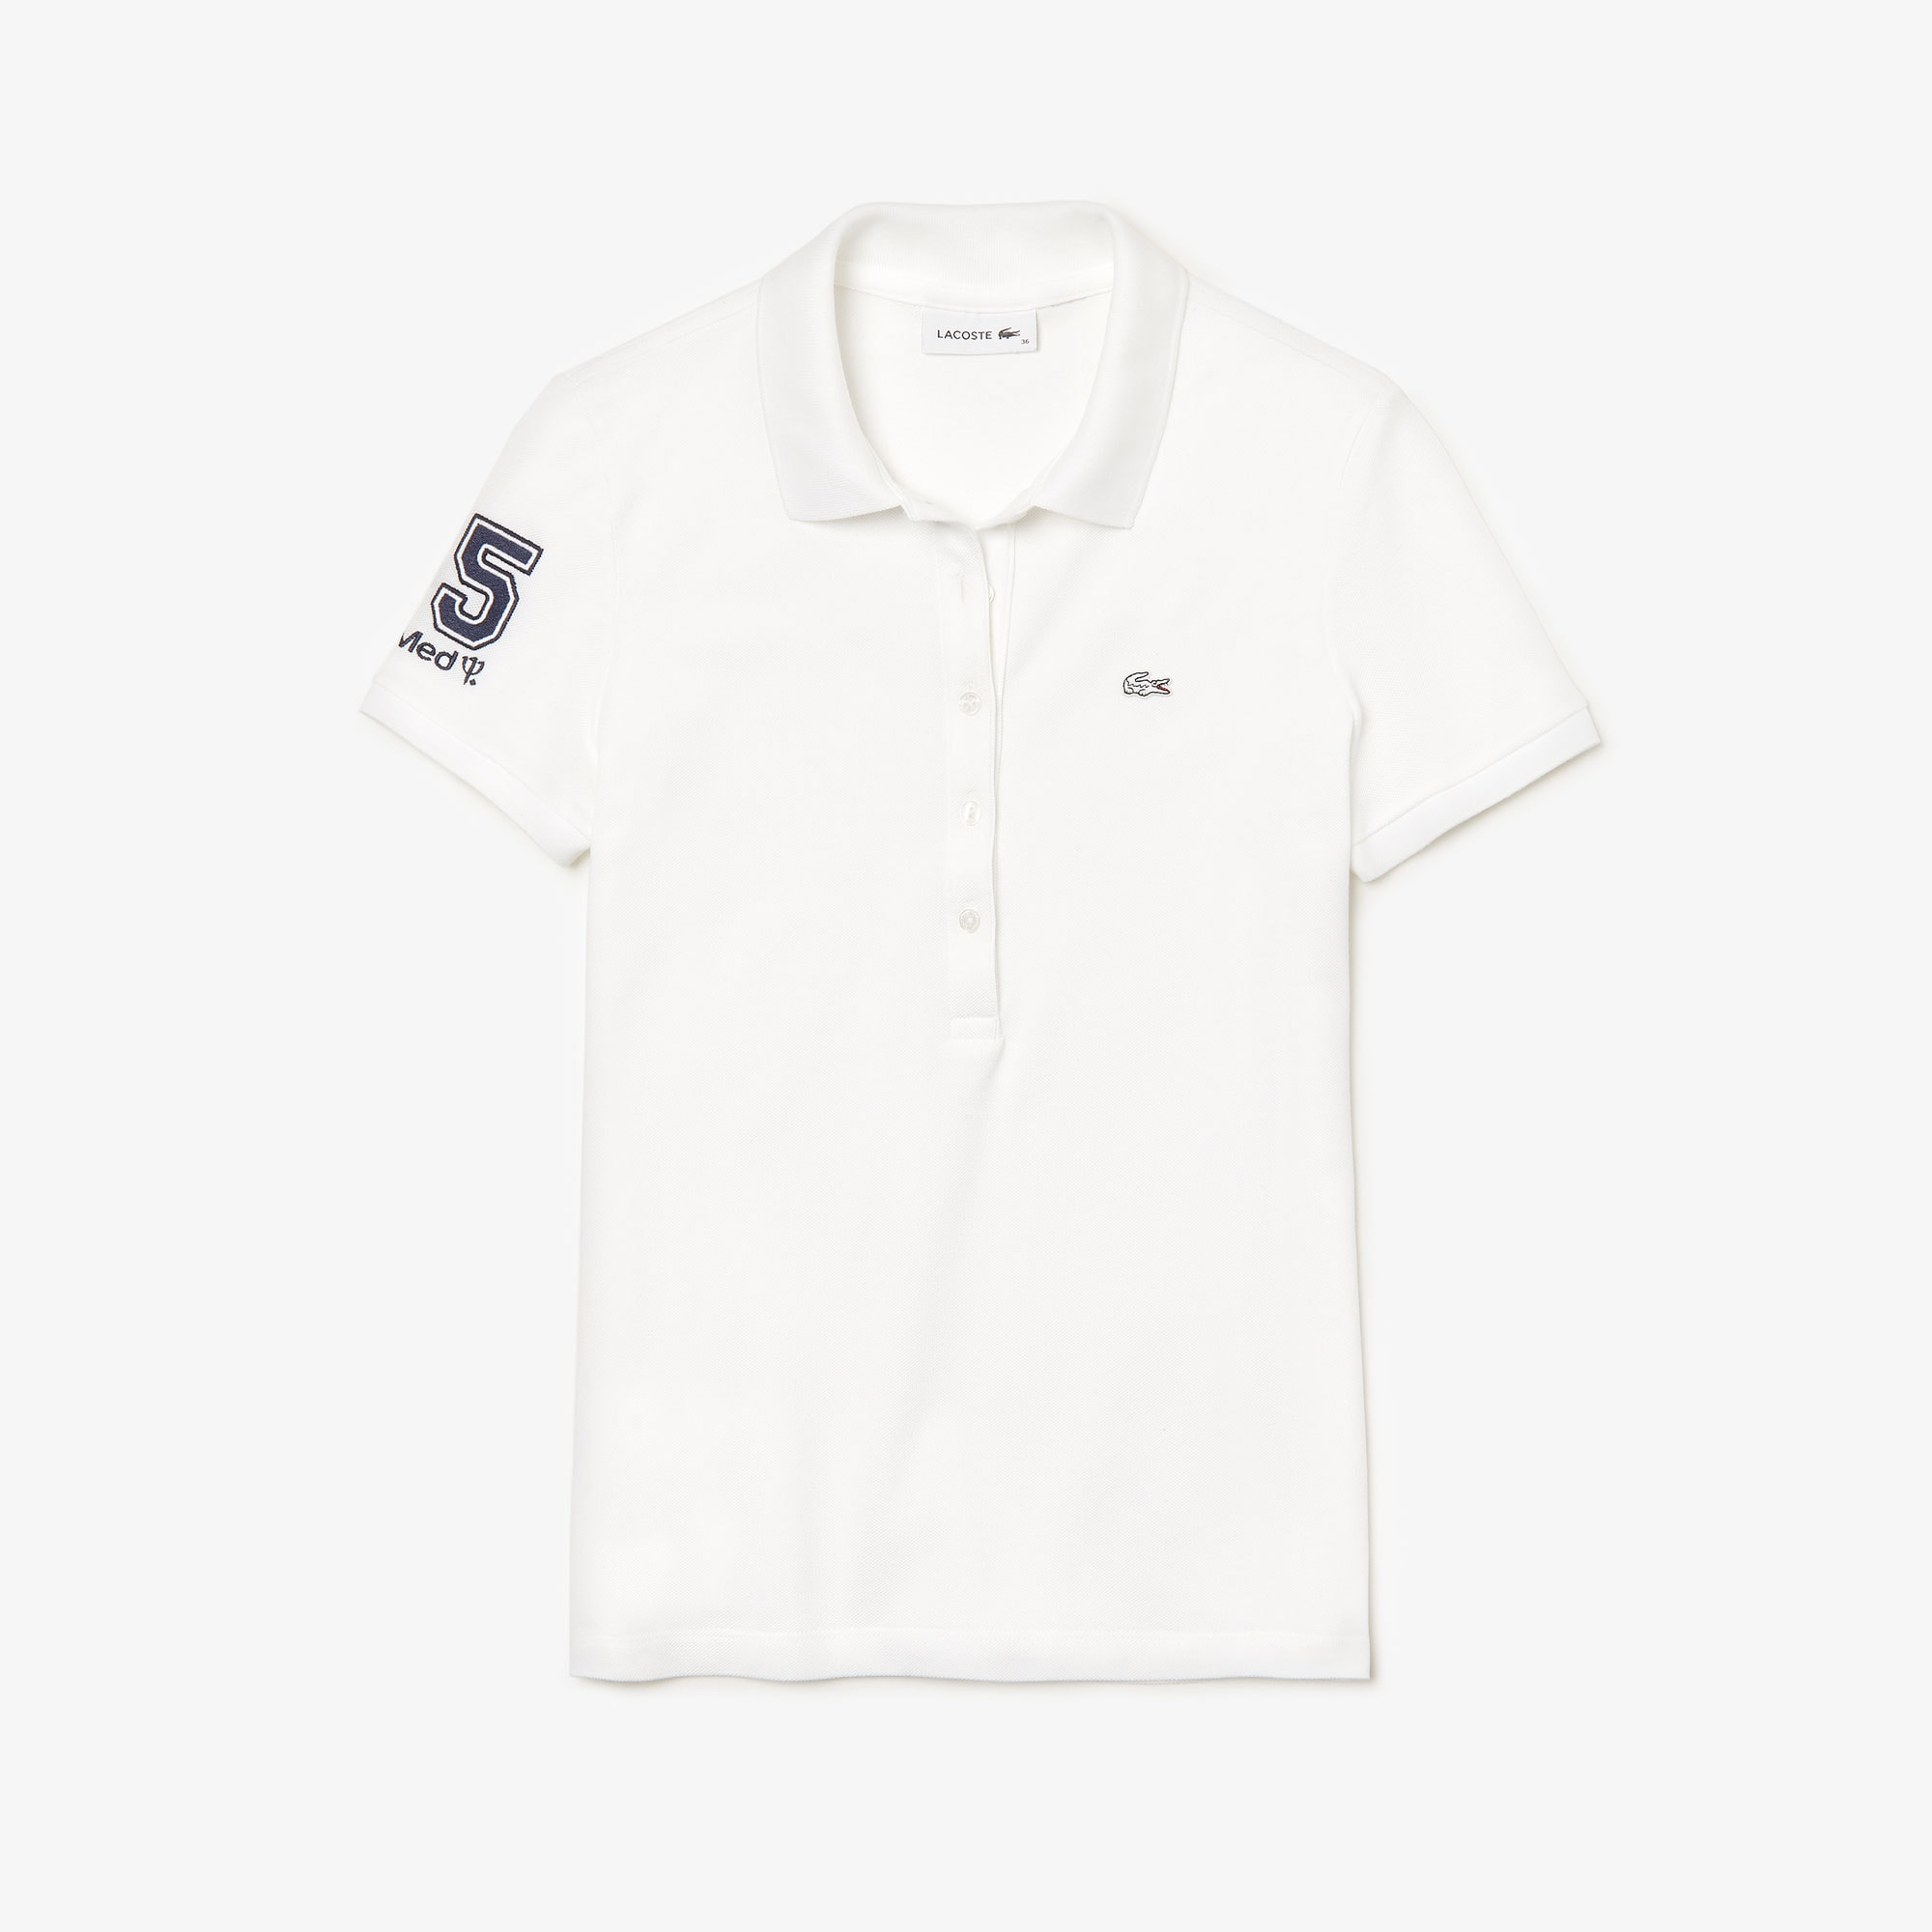 The Feminine Lacoste - Club Med Polo Shirt